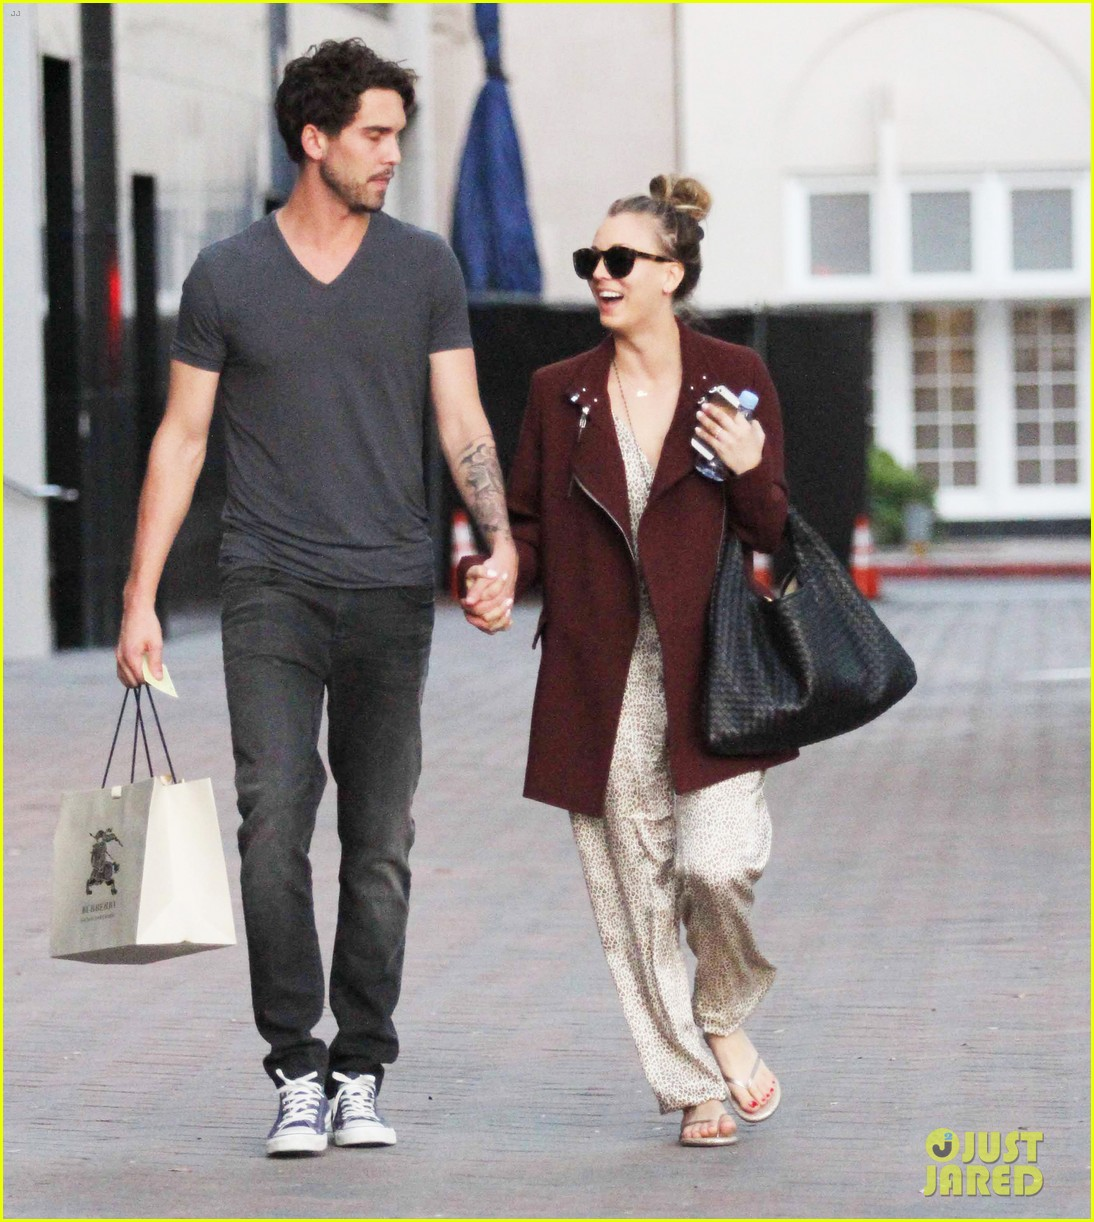 kaley cuoco steps out with ryan sweeting after the pcas 08